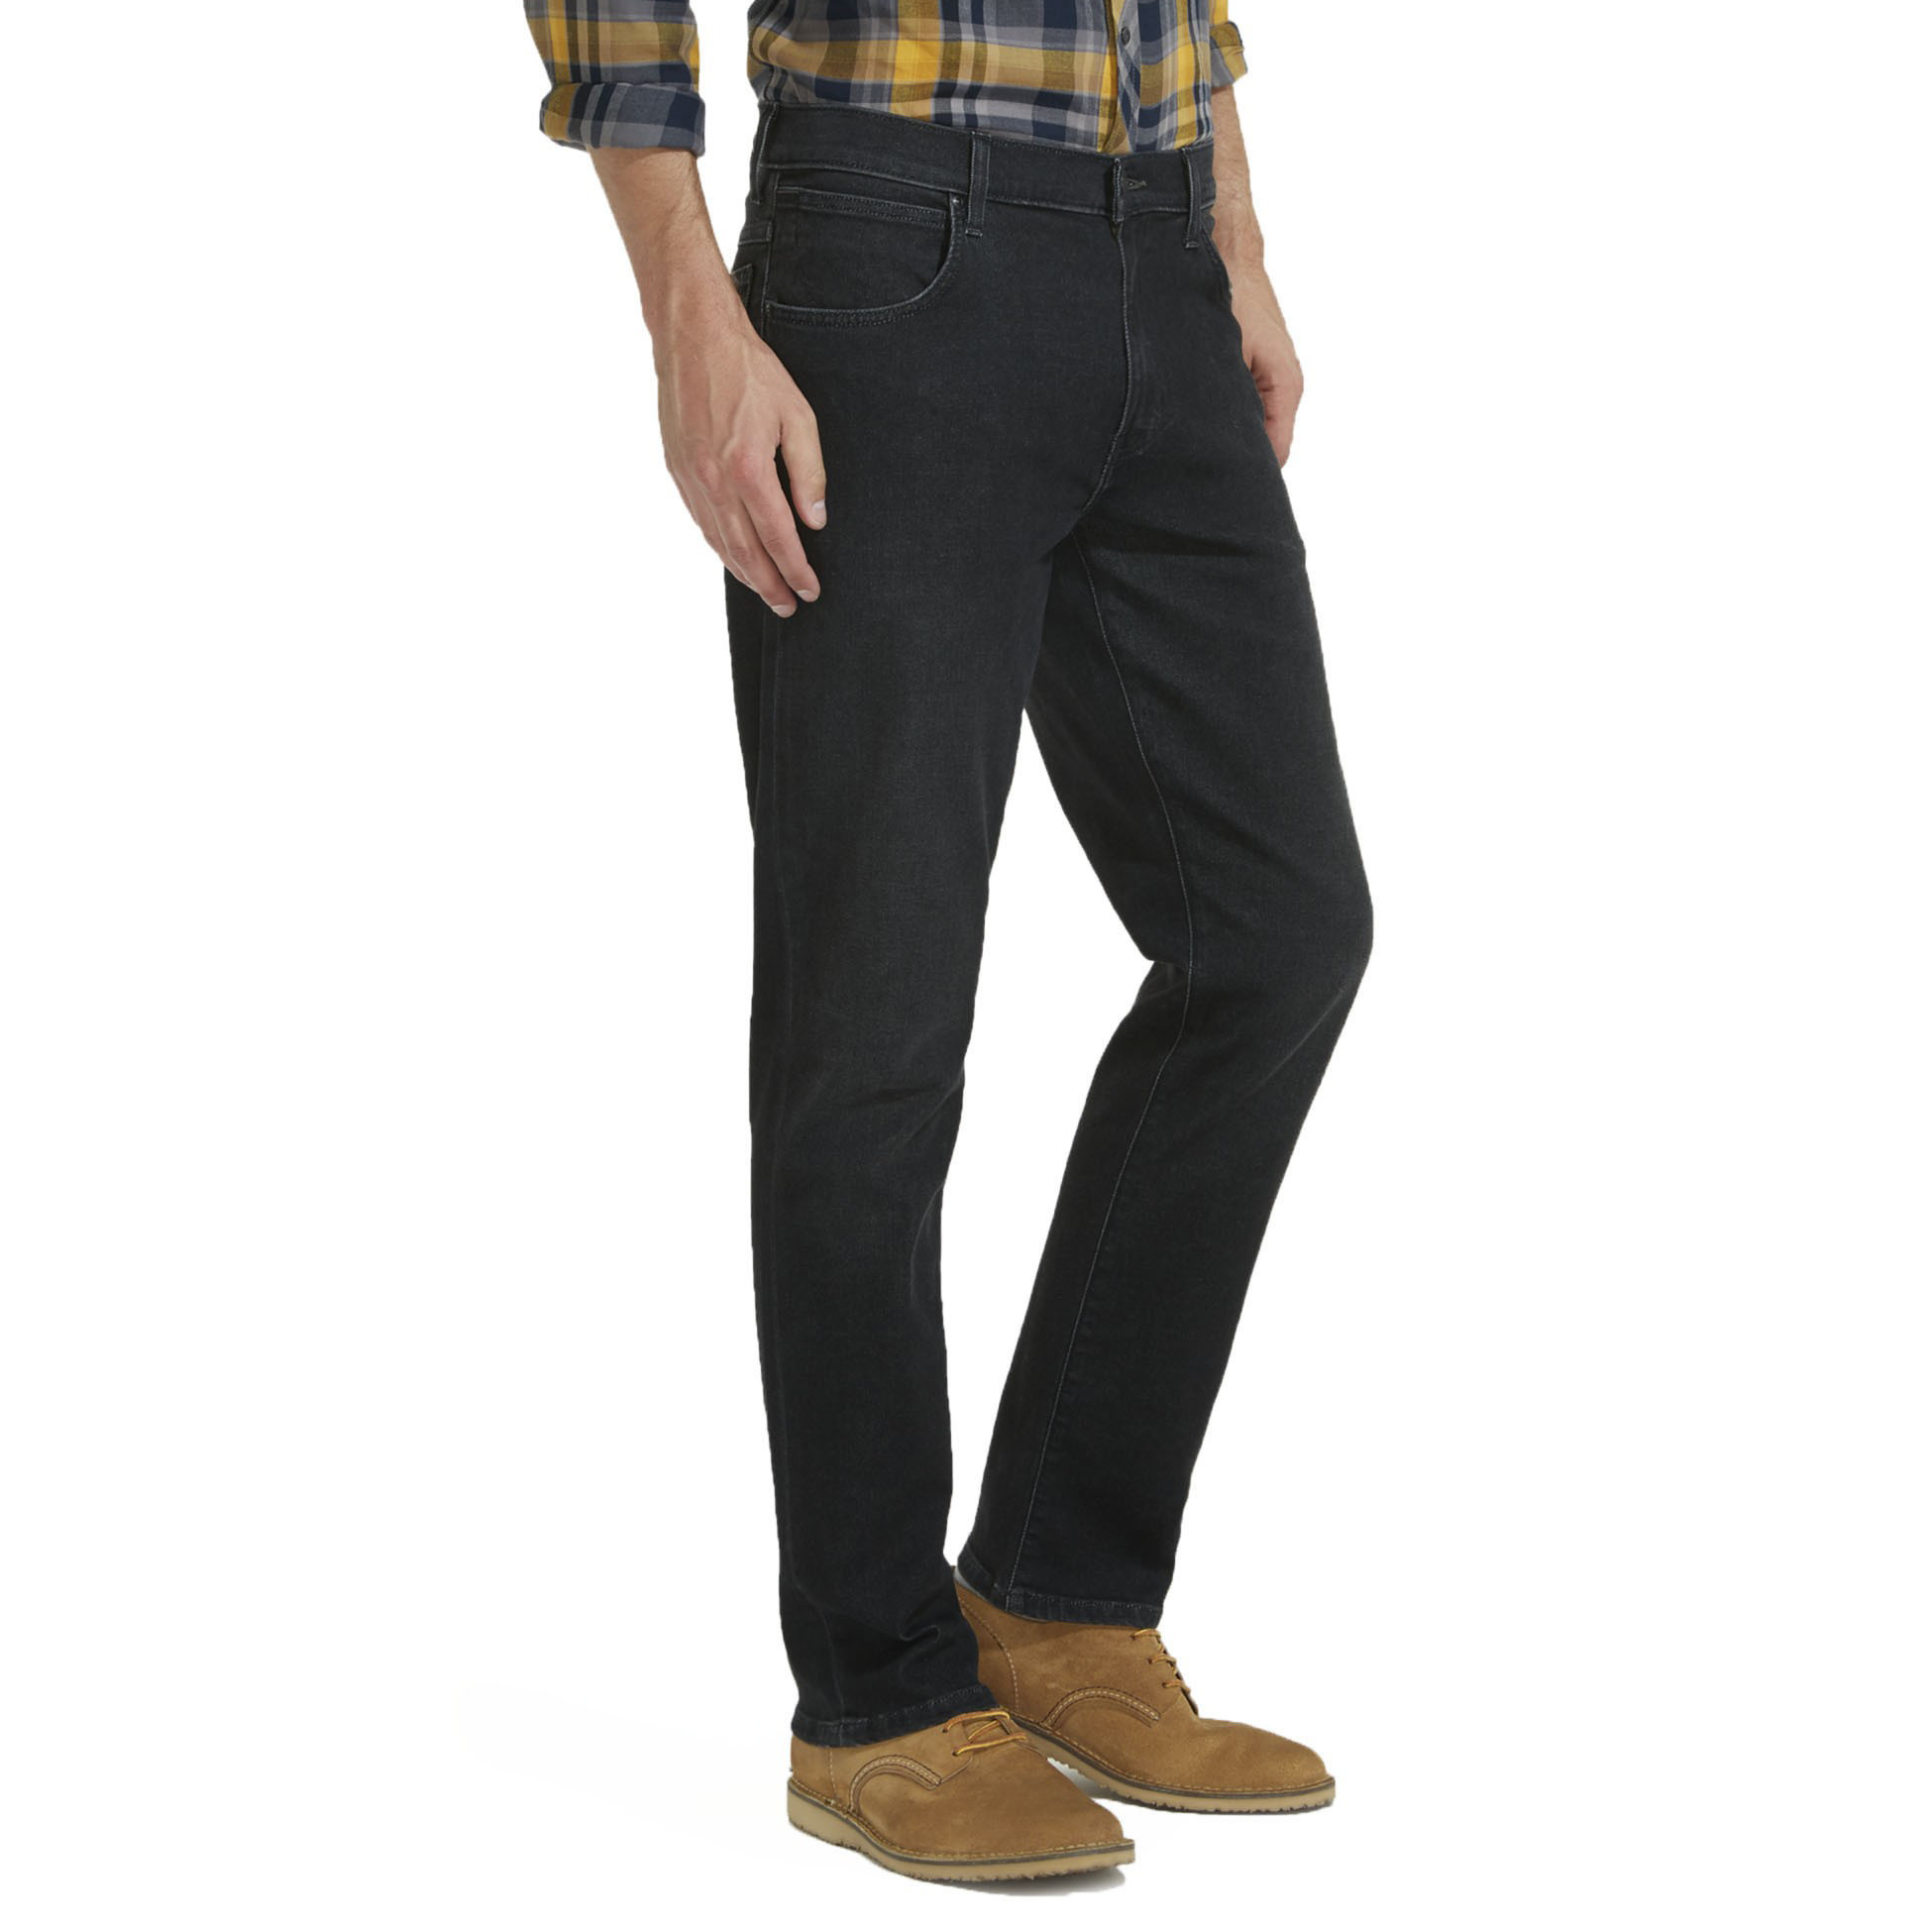 Shop the Latest Collection of Stretch Jeans for Men Online at gtacashbank.ga FREE SHIPPING AVAILABLE!